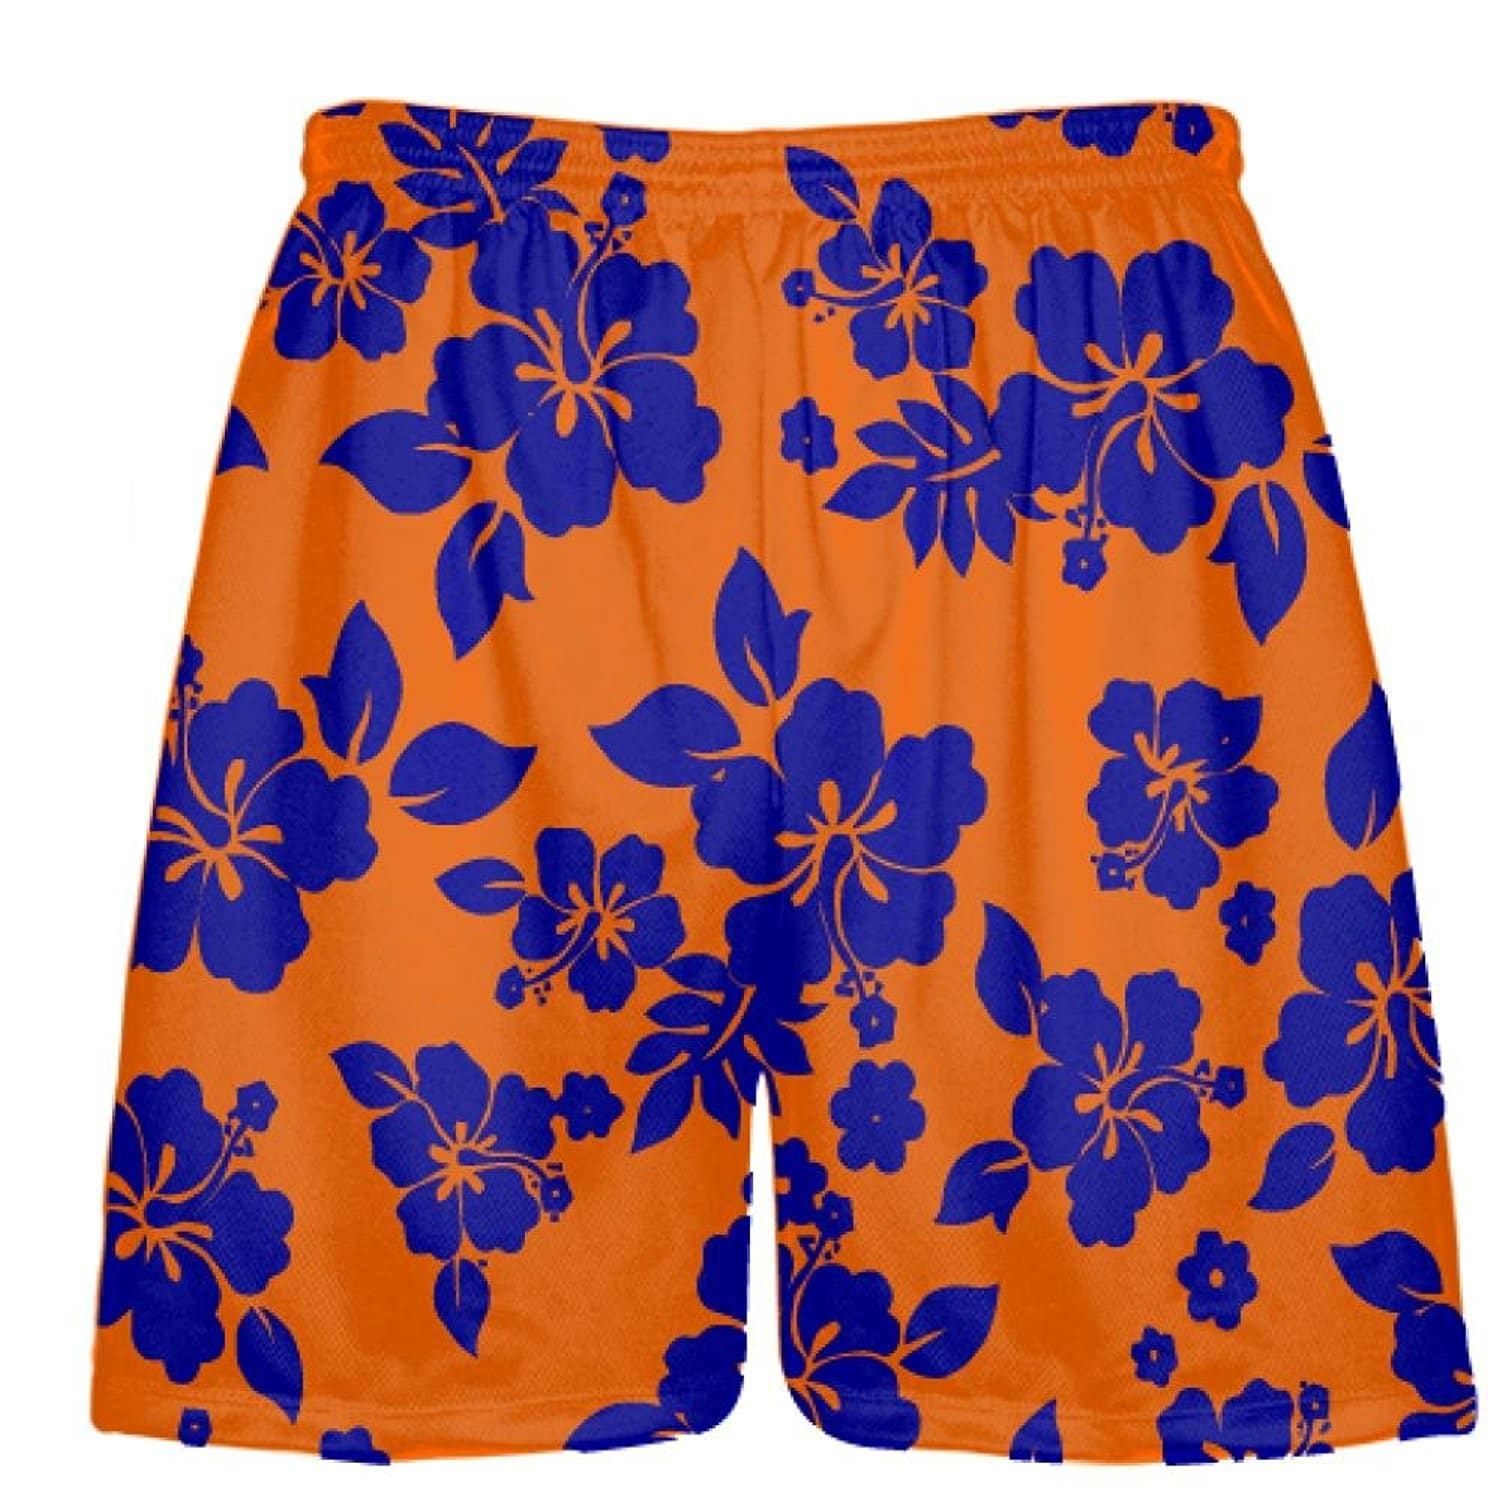 LightningWear-Blue-Orange-Hawaiian-Shorts-Accent-B0797BLZ82